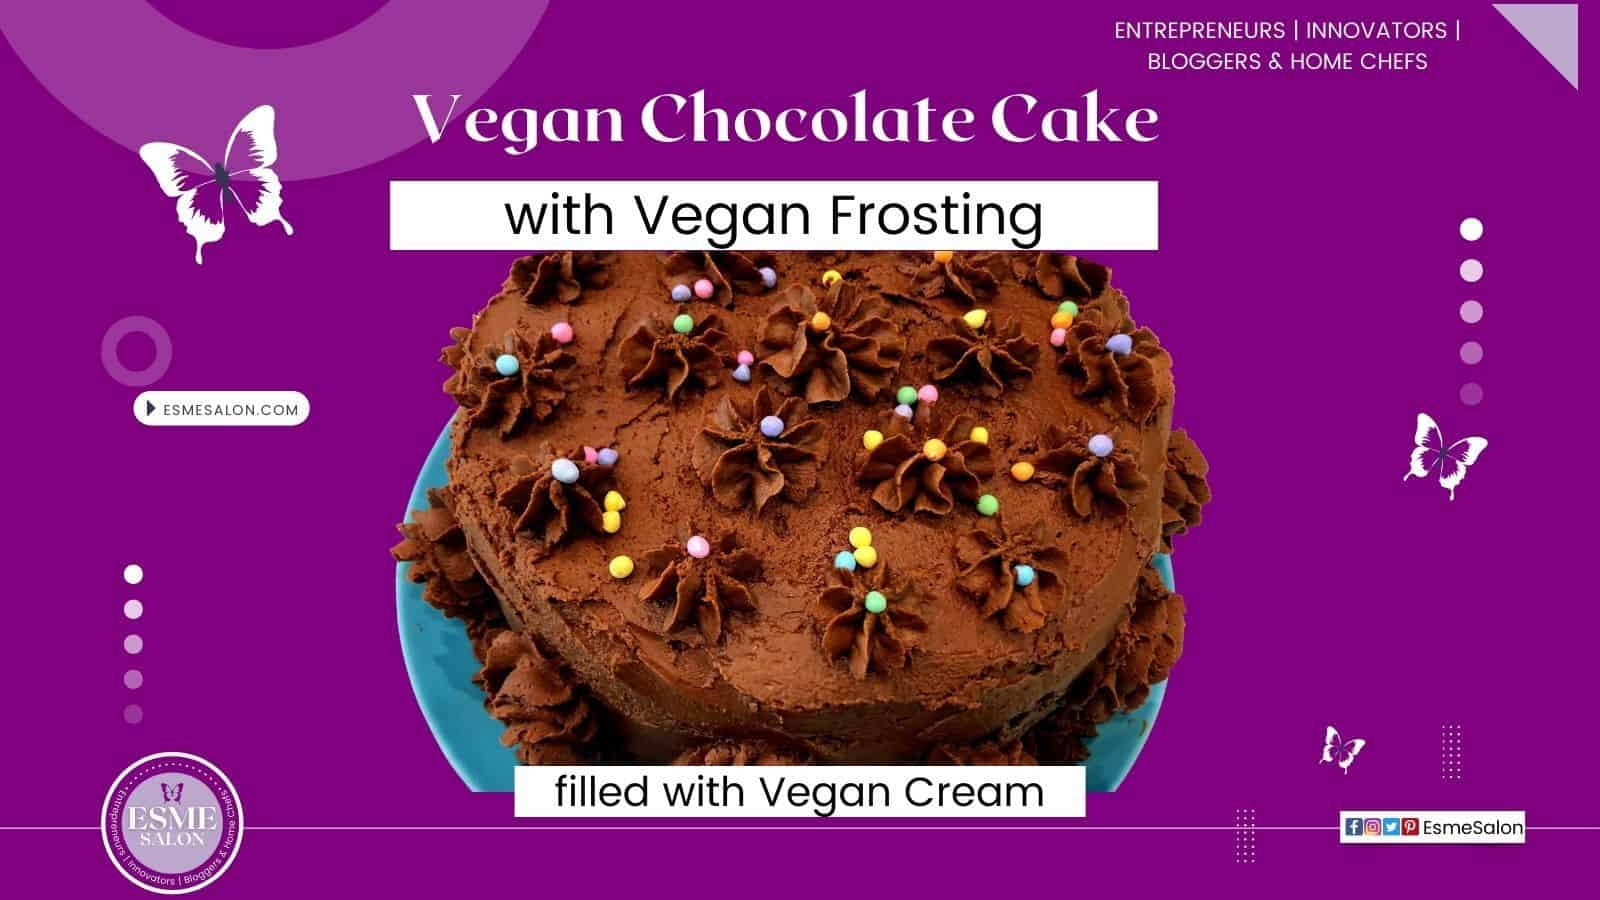 A Vegan Chocolate Cake with vegan cream and vegan chocolate topping with colored sprinkles